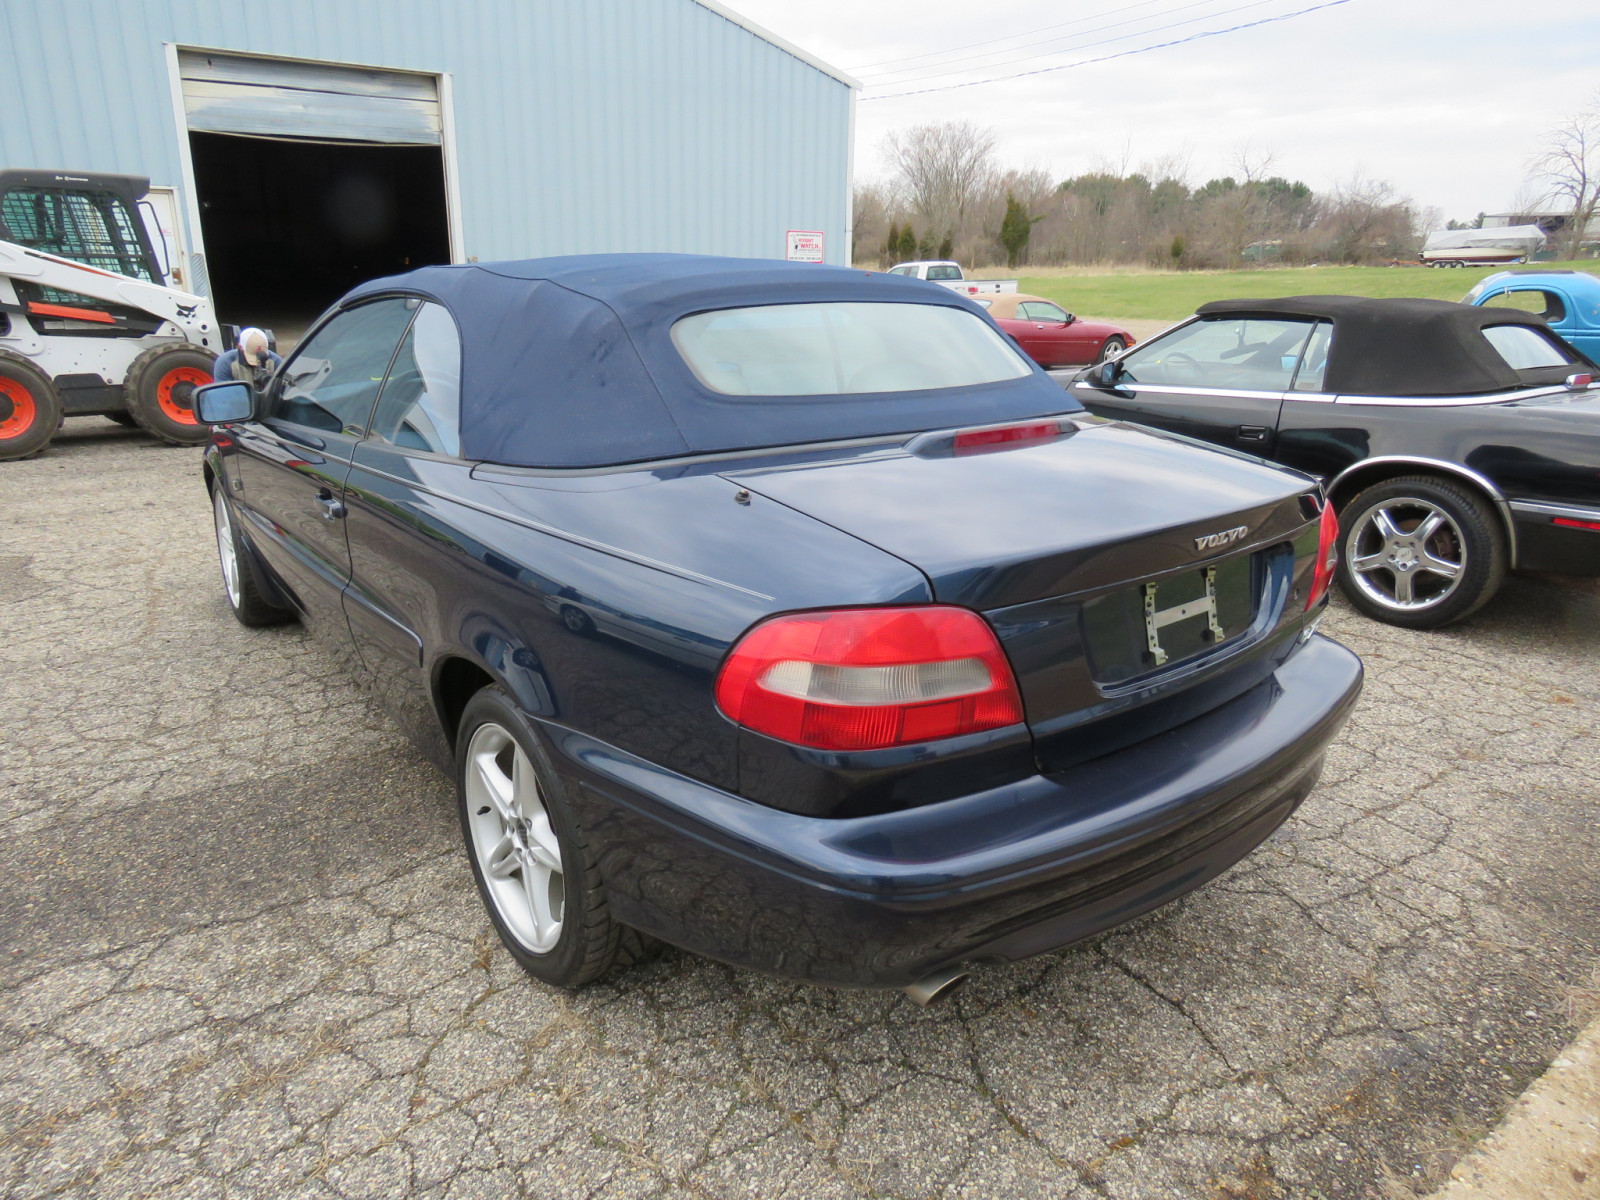 Lot 221t  U2013 2002 Volvo C70 Convertible